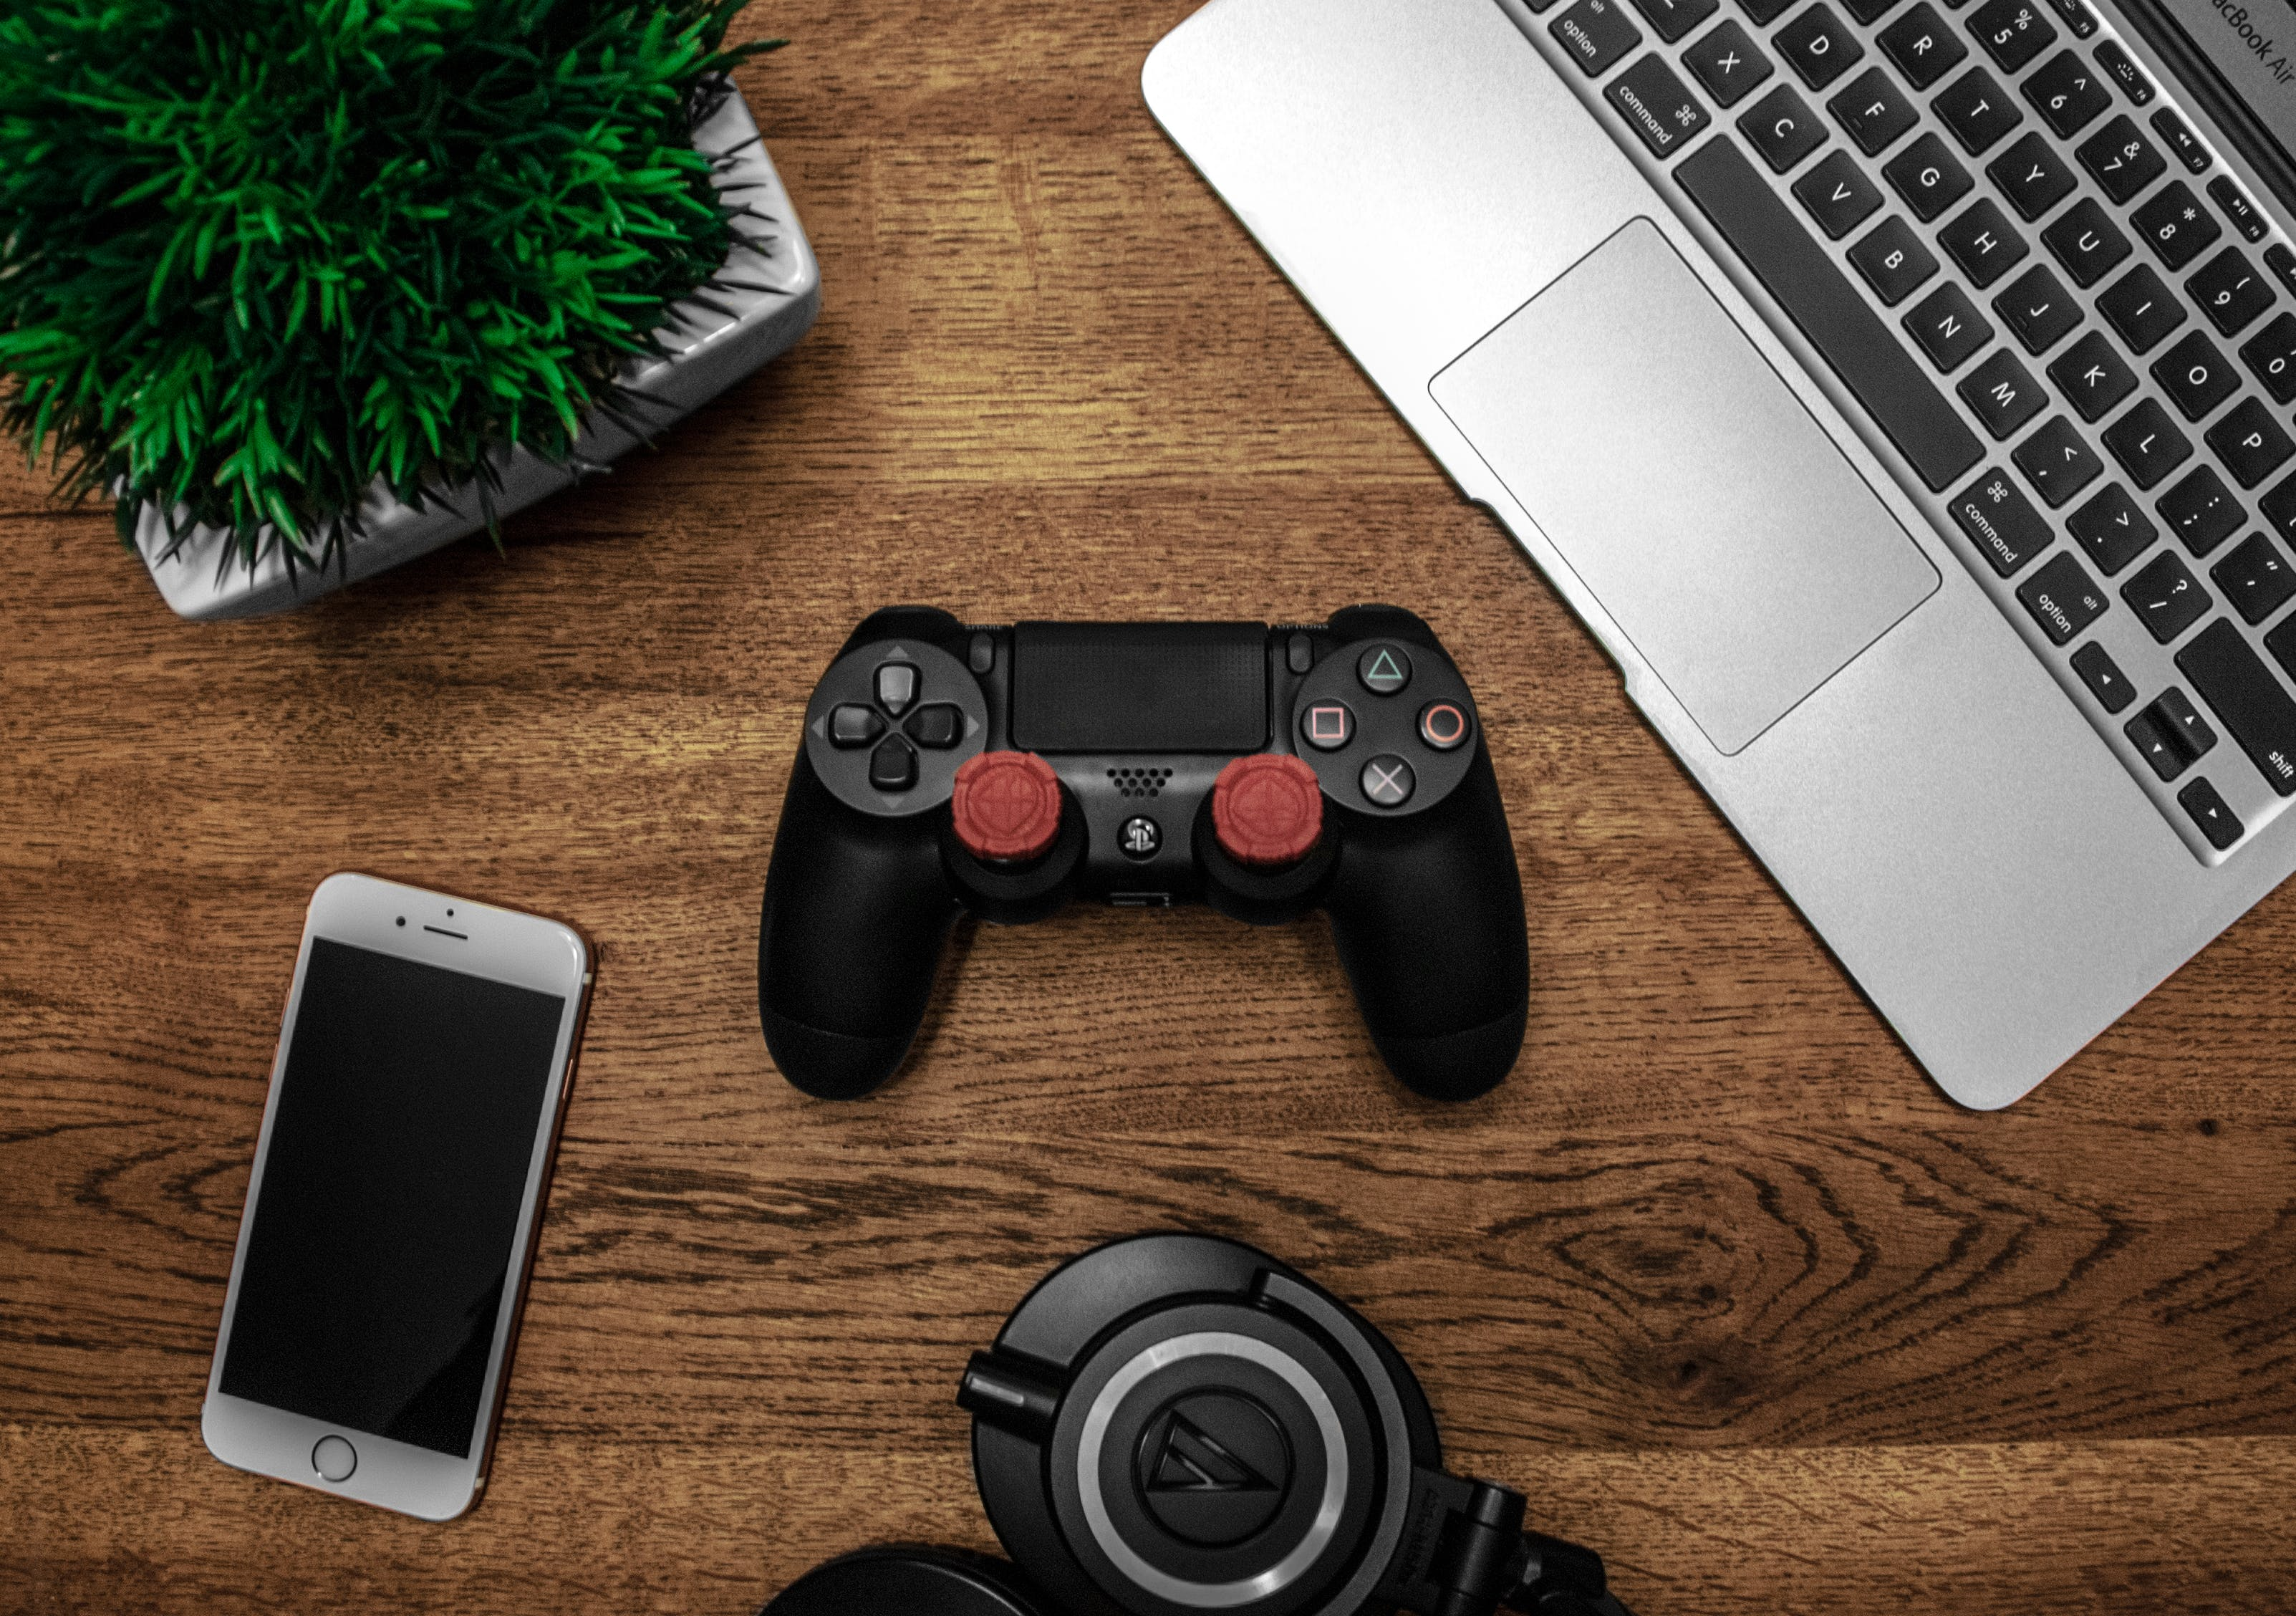 Silver Macbook Beside Black Sony Ps4 Dualshock 4, Silver Iphone 6, and Round Black Keychain on Brown Wooden Table